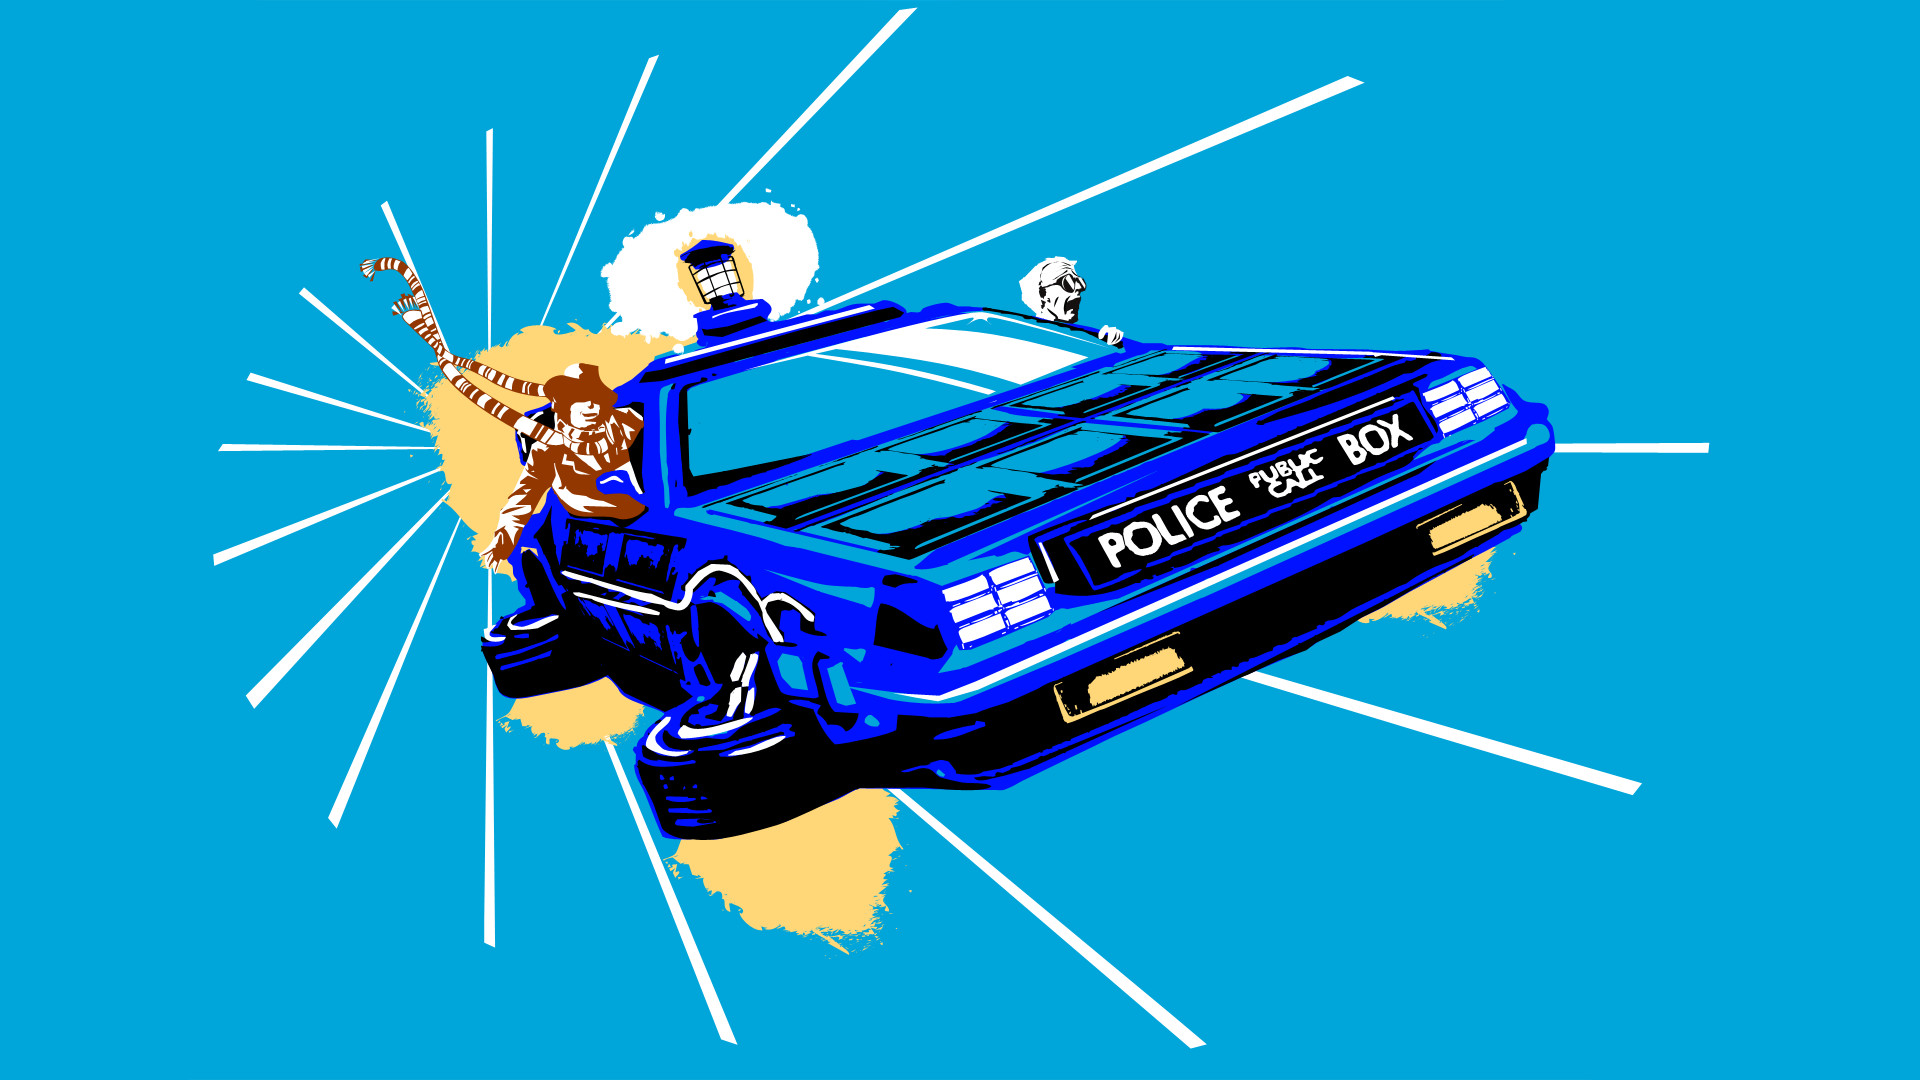 General Doctor Who Back to the Future TARDIS DeLorean artwork  science fiction TV The Doctor